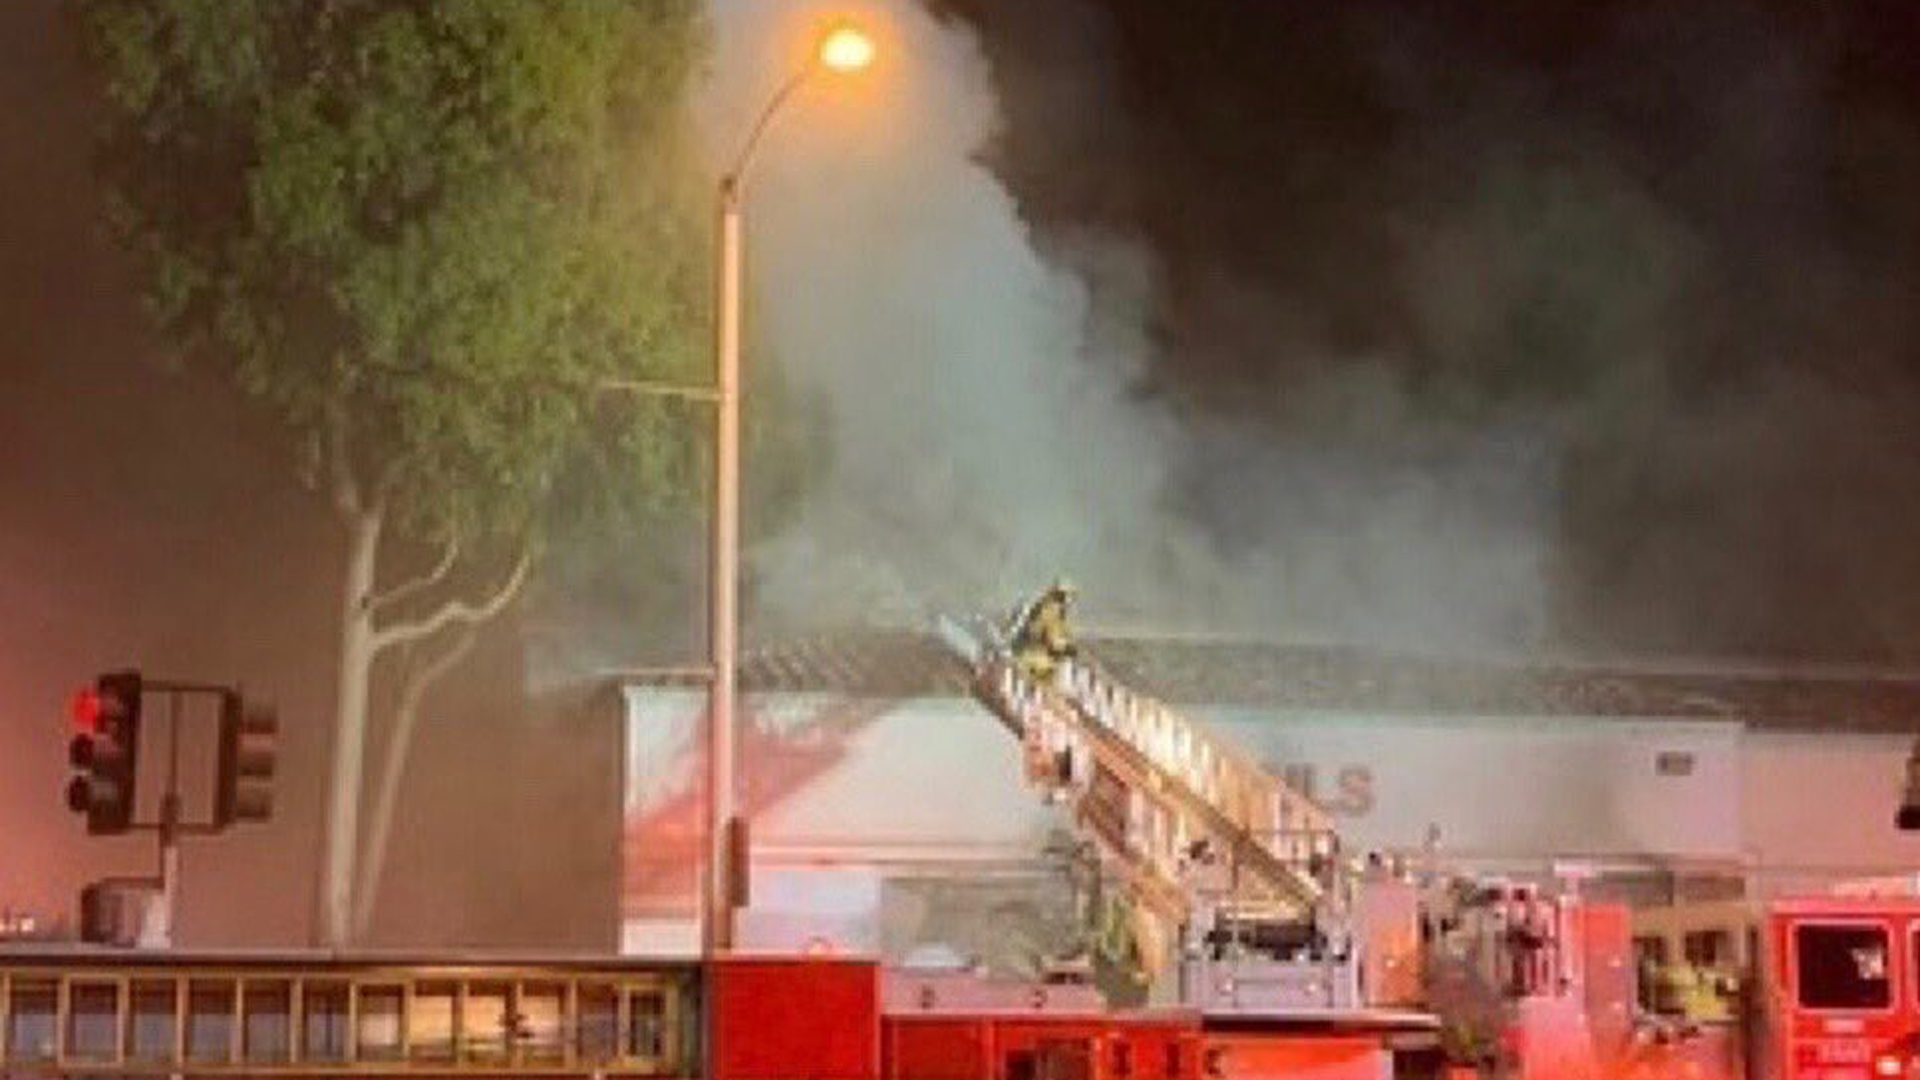 A woman was critically injured when a fire tore through a Pico Rivera strip mall on Nov. 13, 2019. (Credit: Los Angeles County Fire Department)